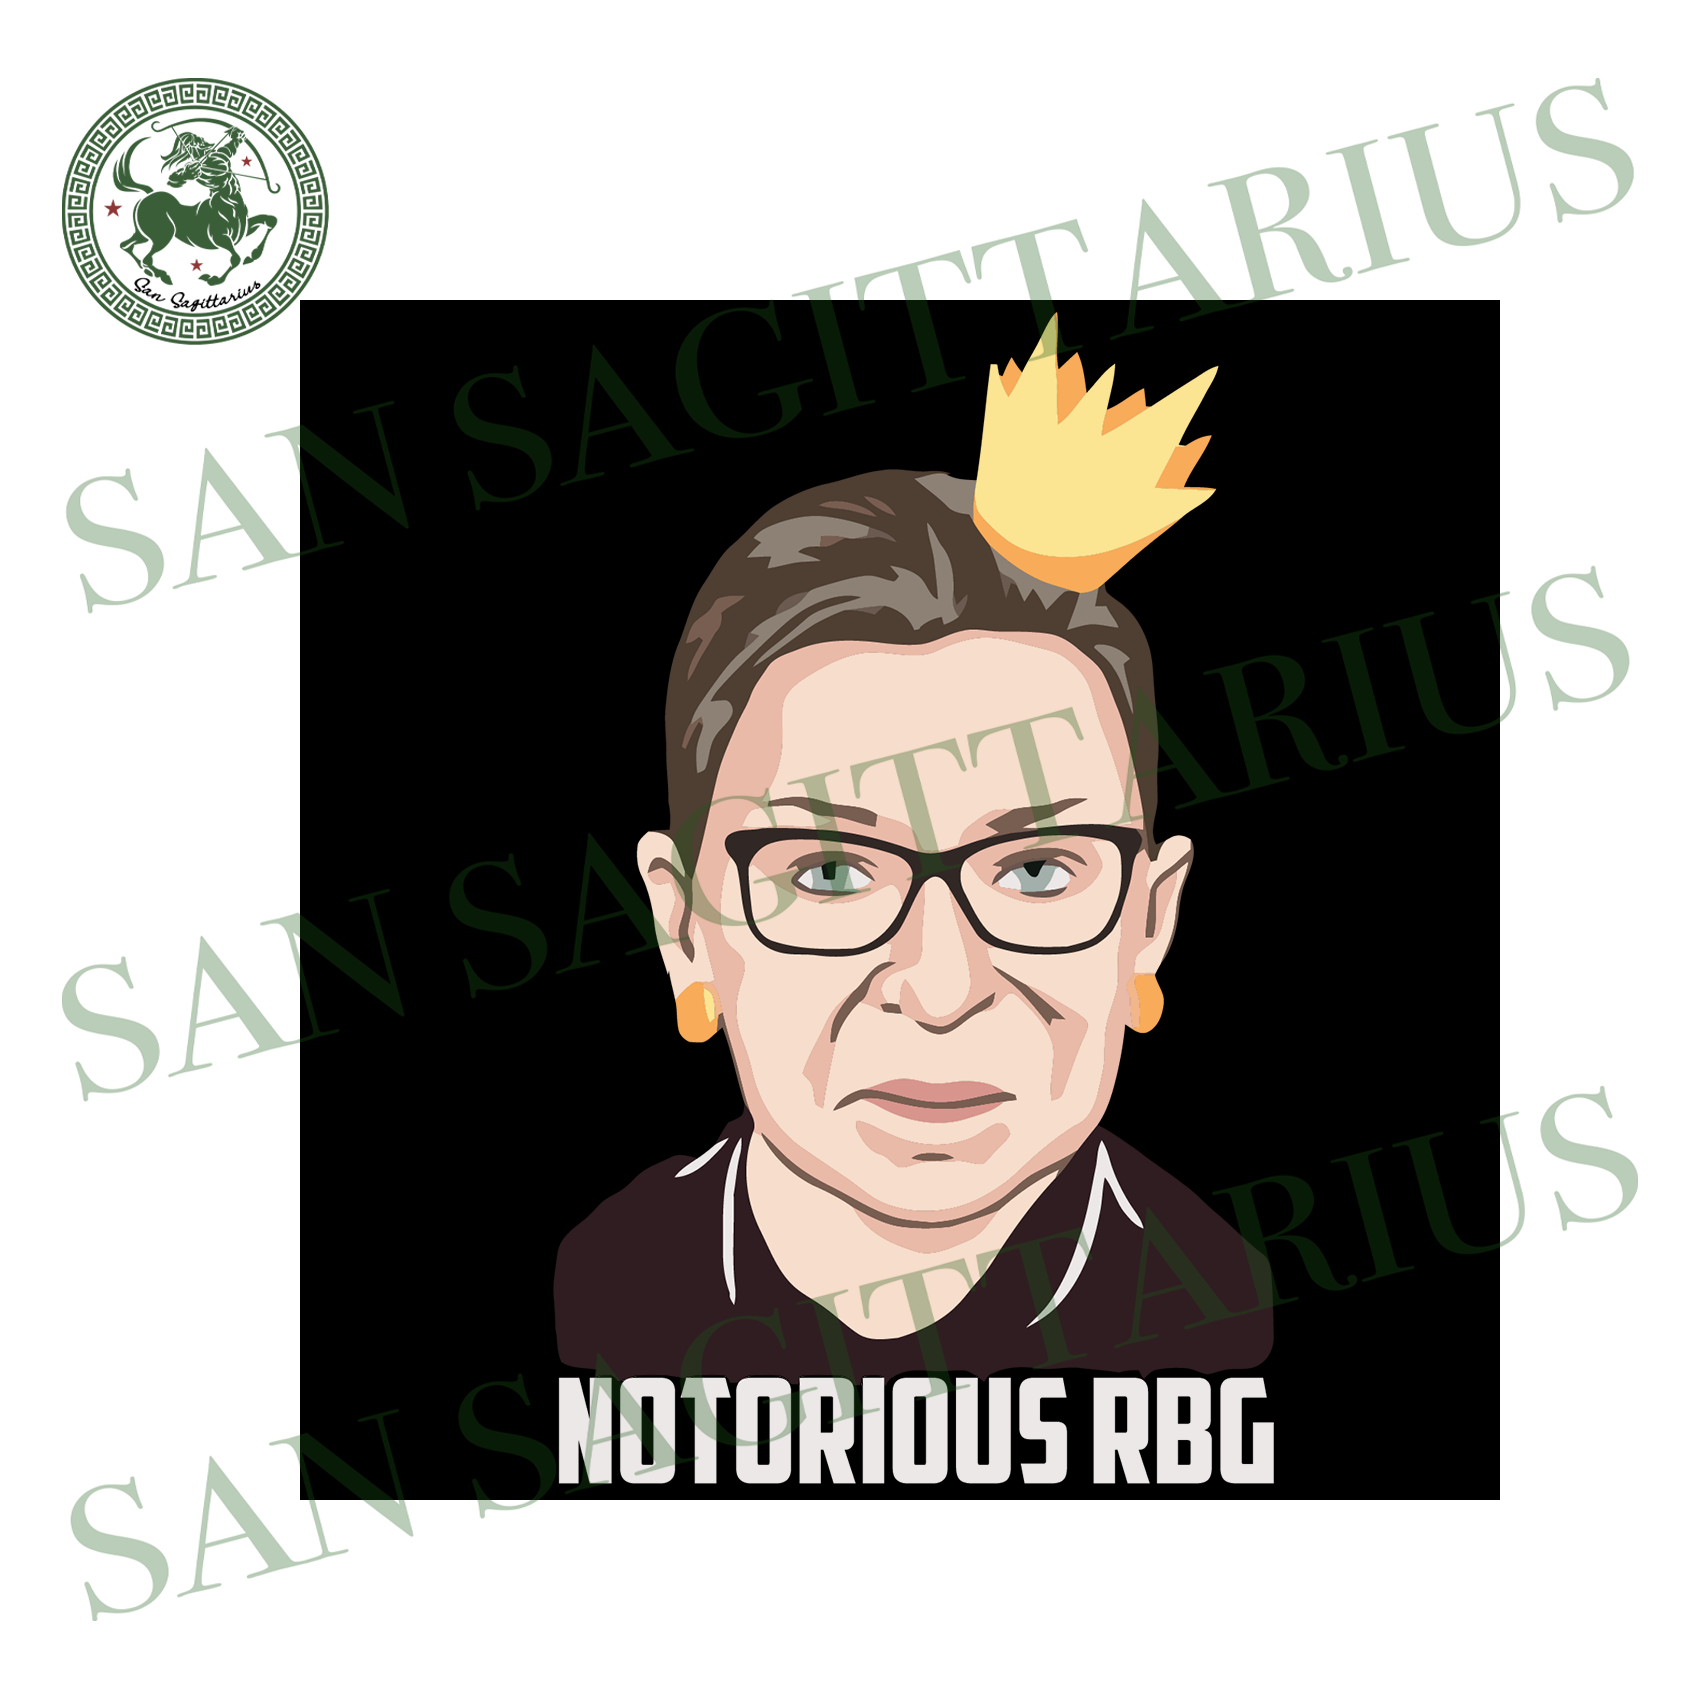 Notorious Rbg Svg,Ruth Bader Ginsburg Svg,Feminist Shirt, Ruth Bader Ginsburg Shirt,Vintage Ruth Bader Ginsburg Svg,Human Rights, Queen Crown Supreme Court,Trending 2020 Svg